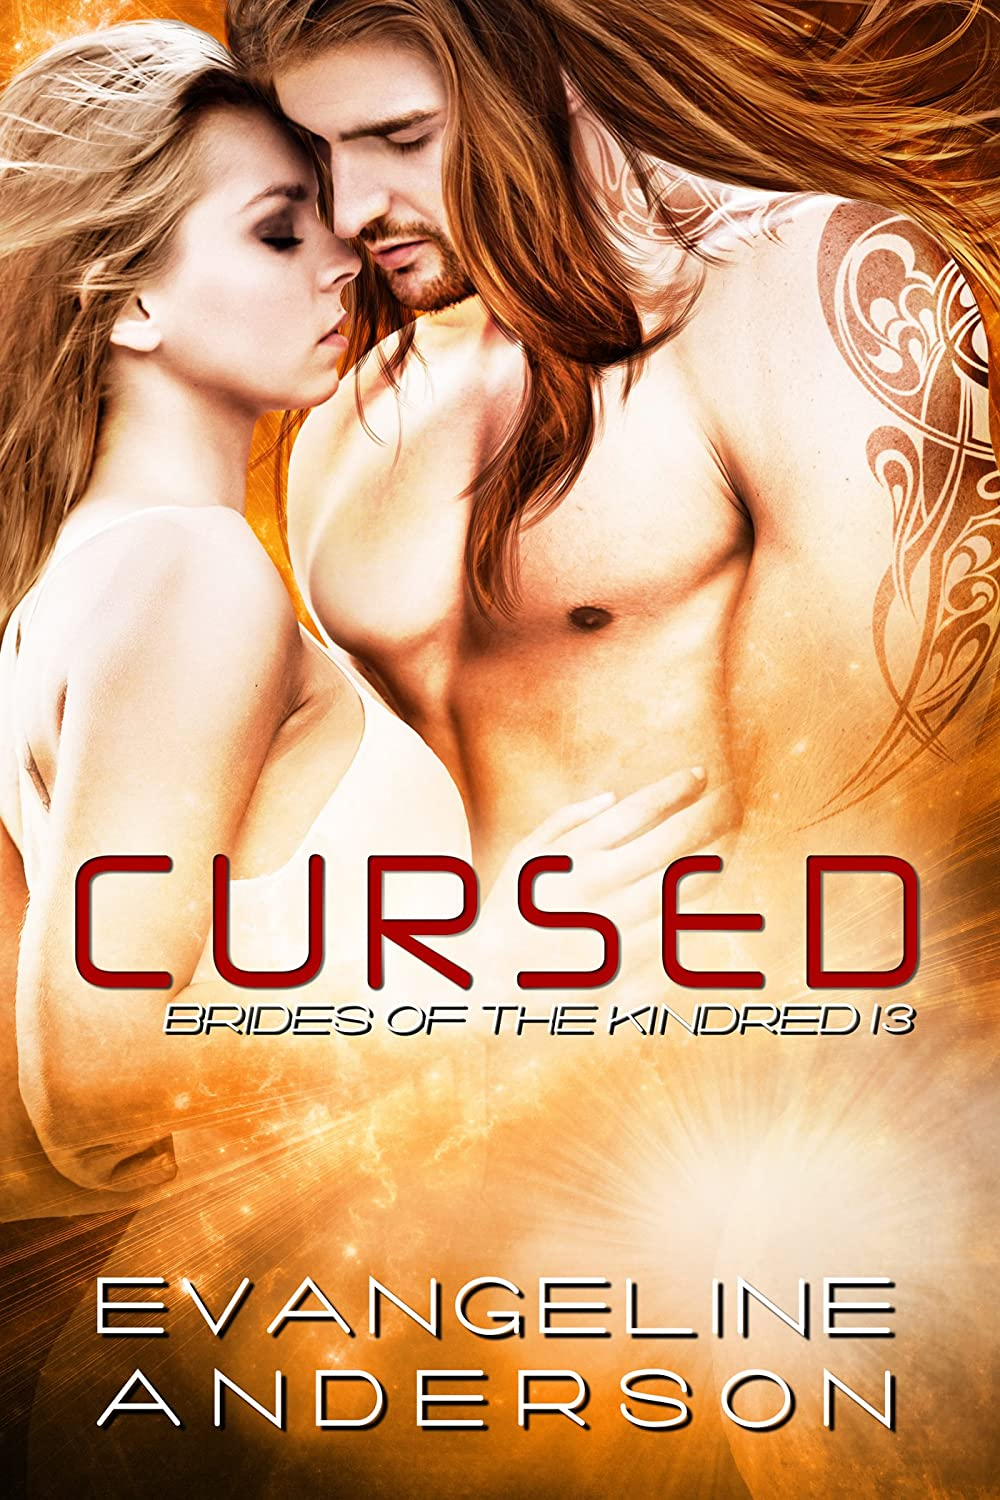 Cursed: Brides of the Kindred 13 - Evangeline Anderson